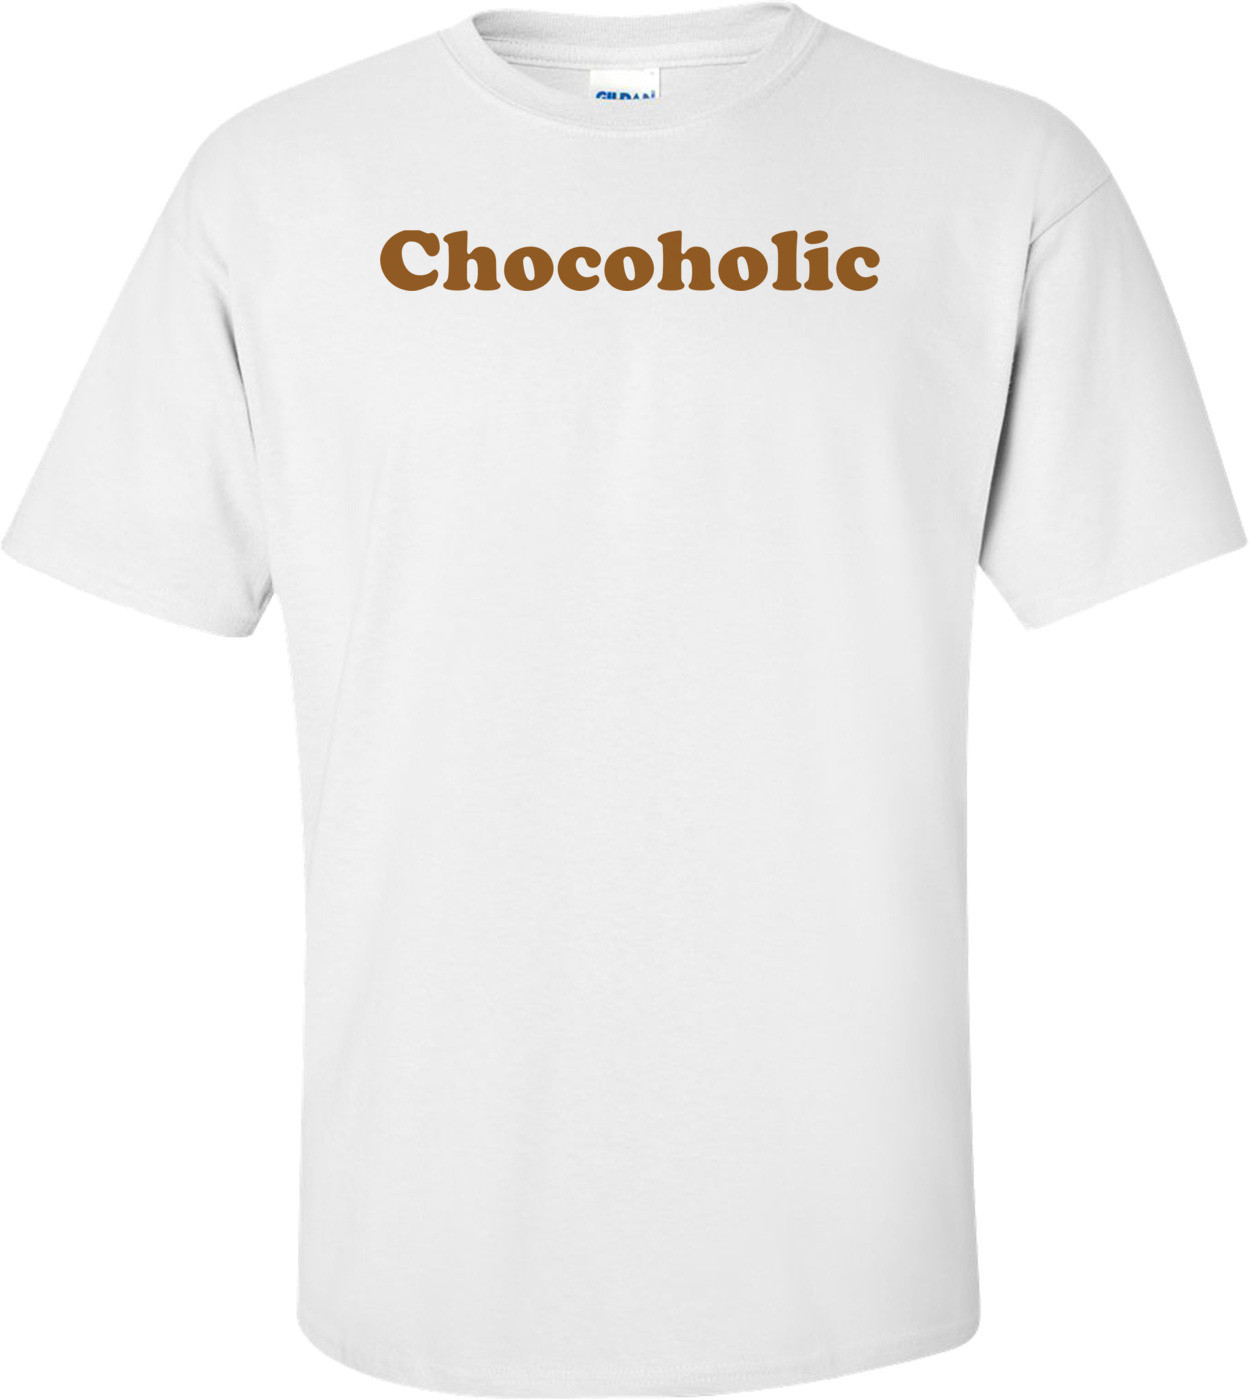 Chocoholic Shirt